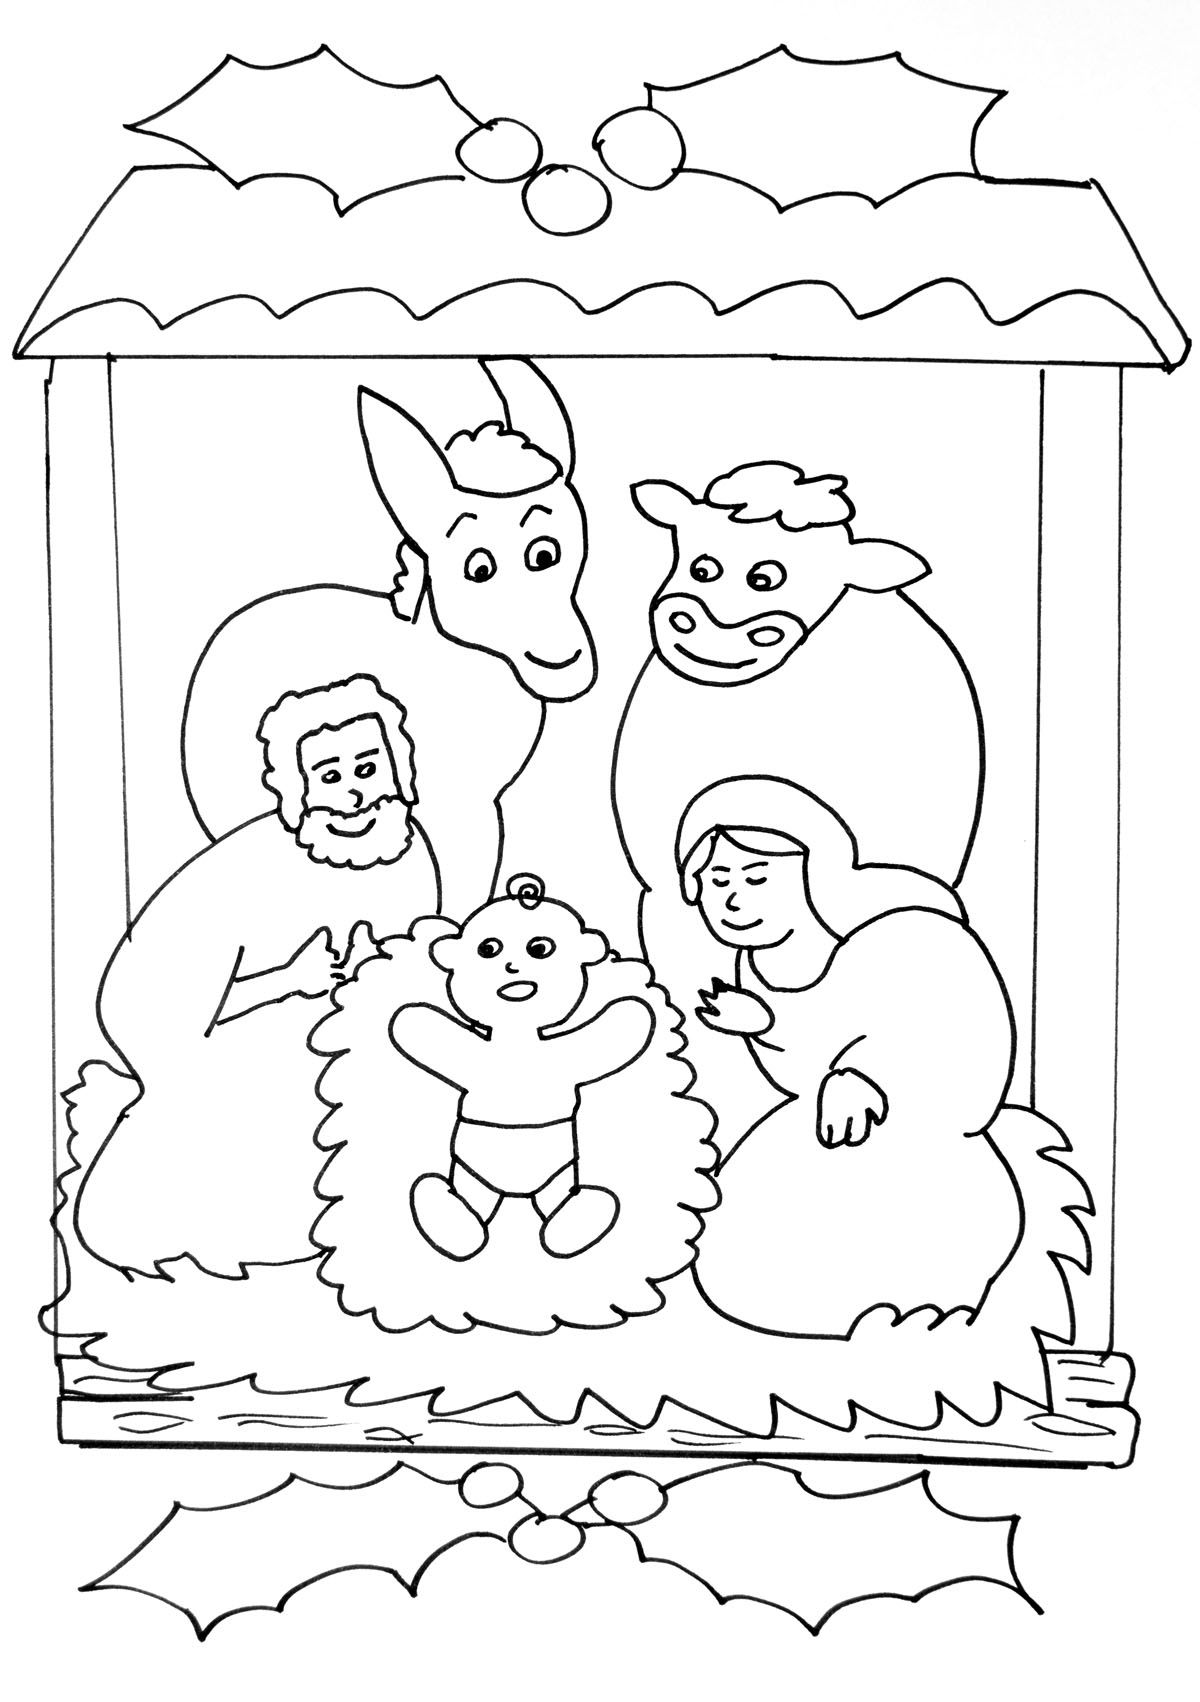 Children's coloring pages of nativity - Nativity Scene Simple Coloring Page For Young Children